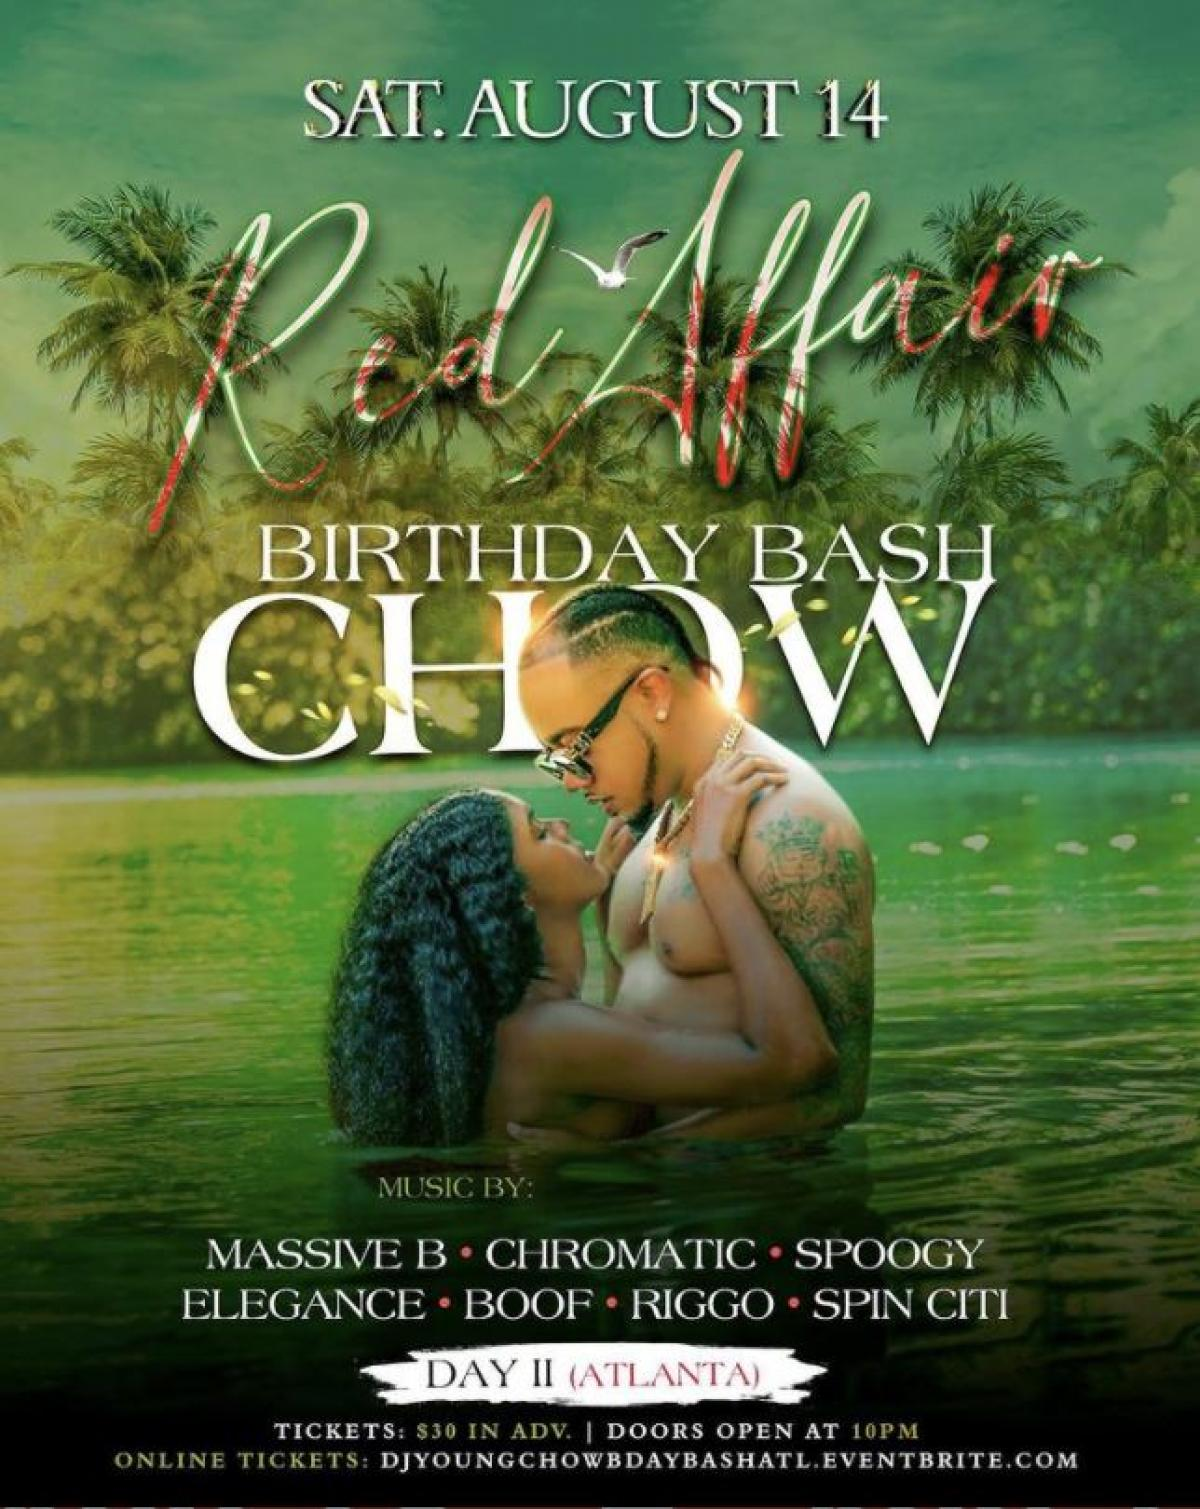 Dj Young Chow Birthday Bash ATL: All Red Affair flyer or graphic.